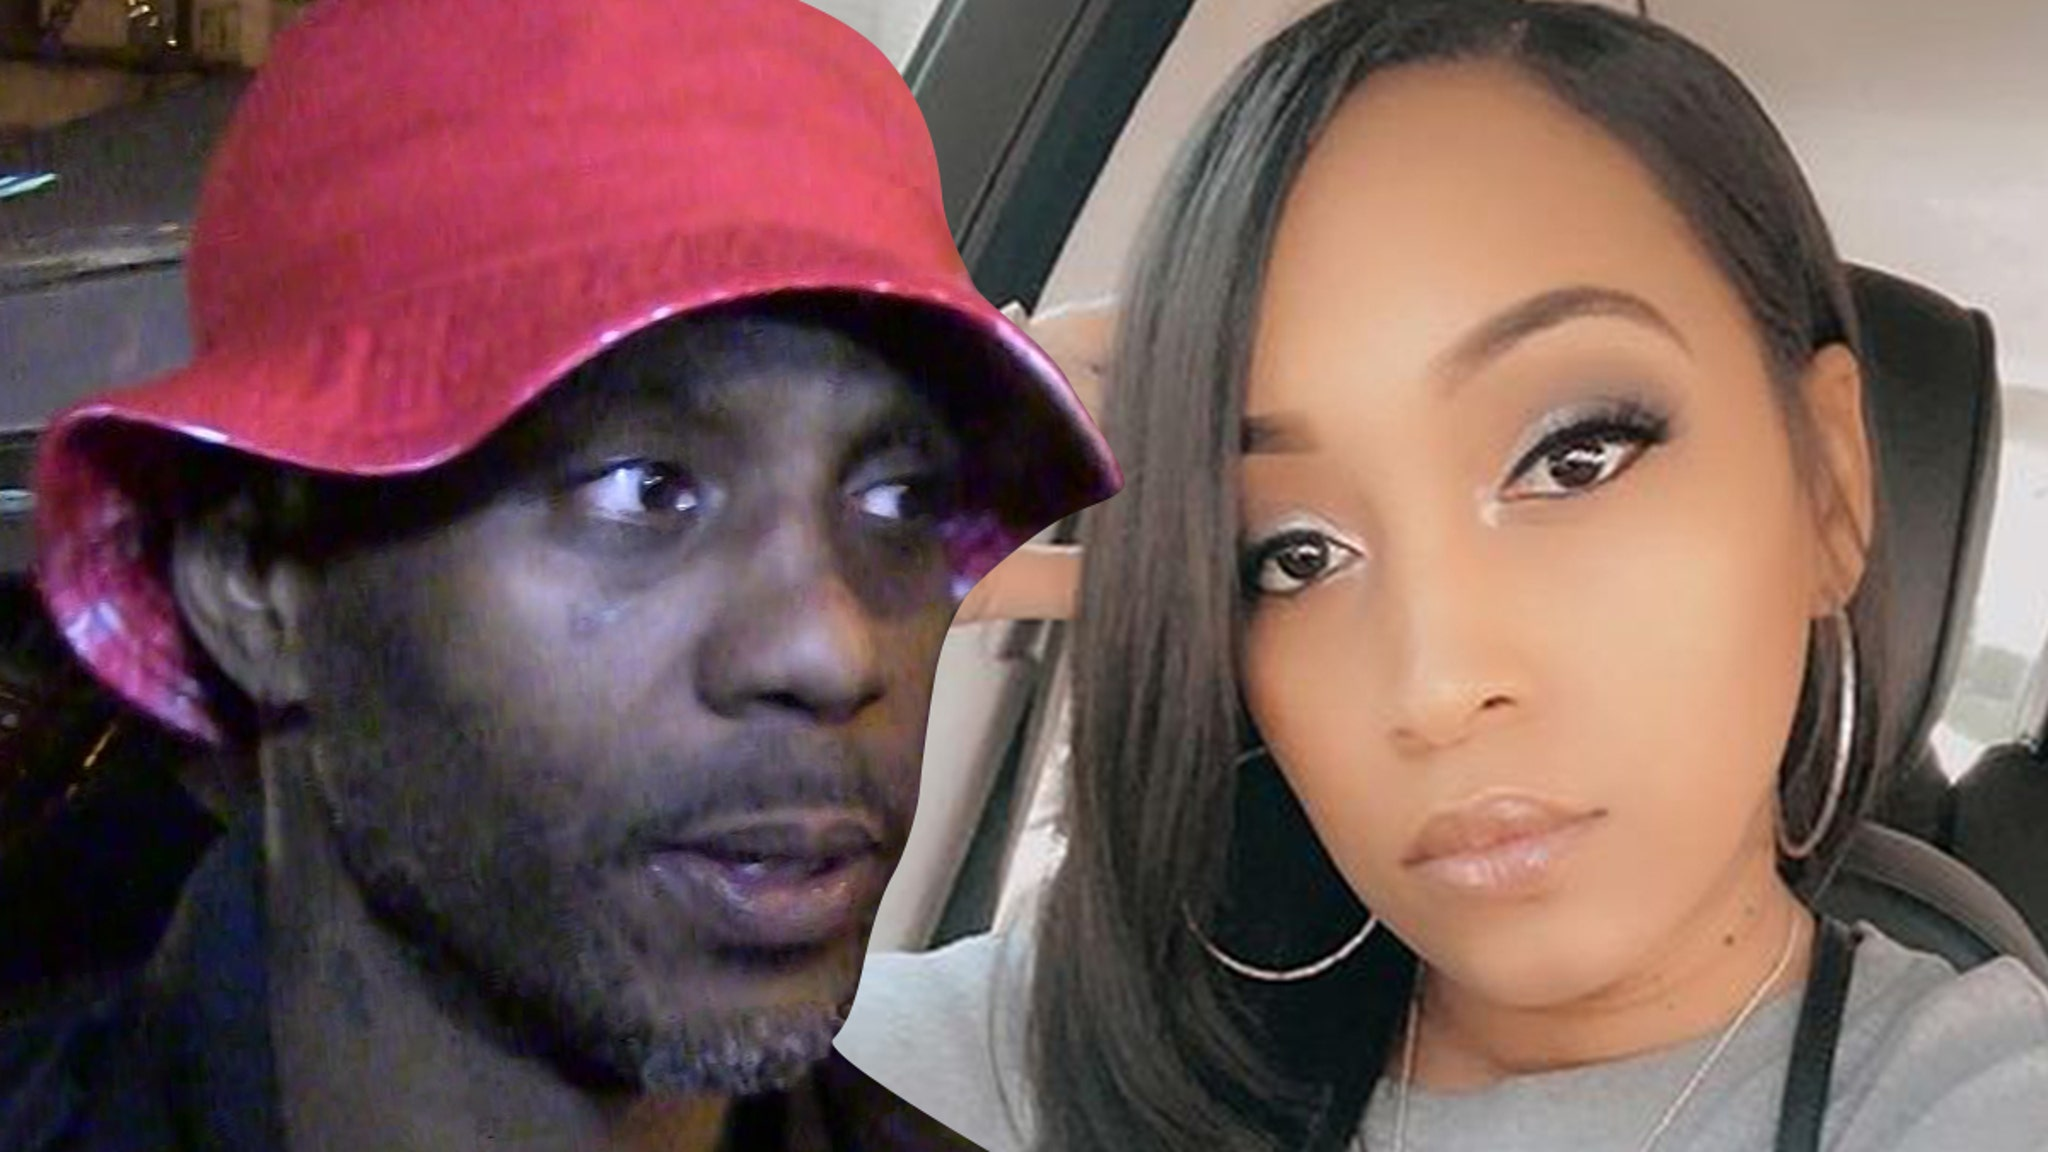 DMX's Fiancee Desiree Lindstrom Opens Up About Her Loss - TMZ